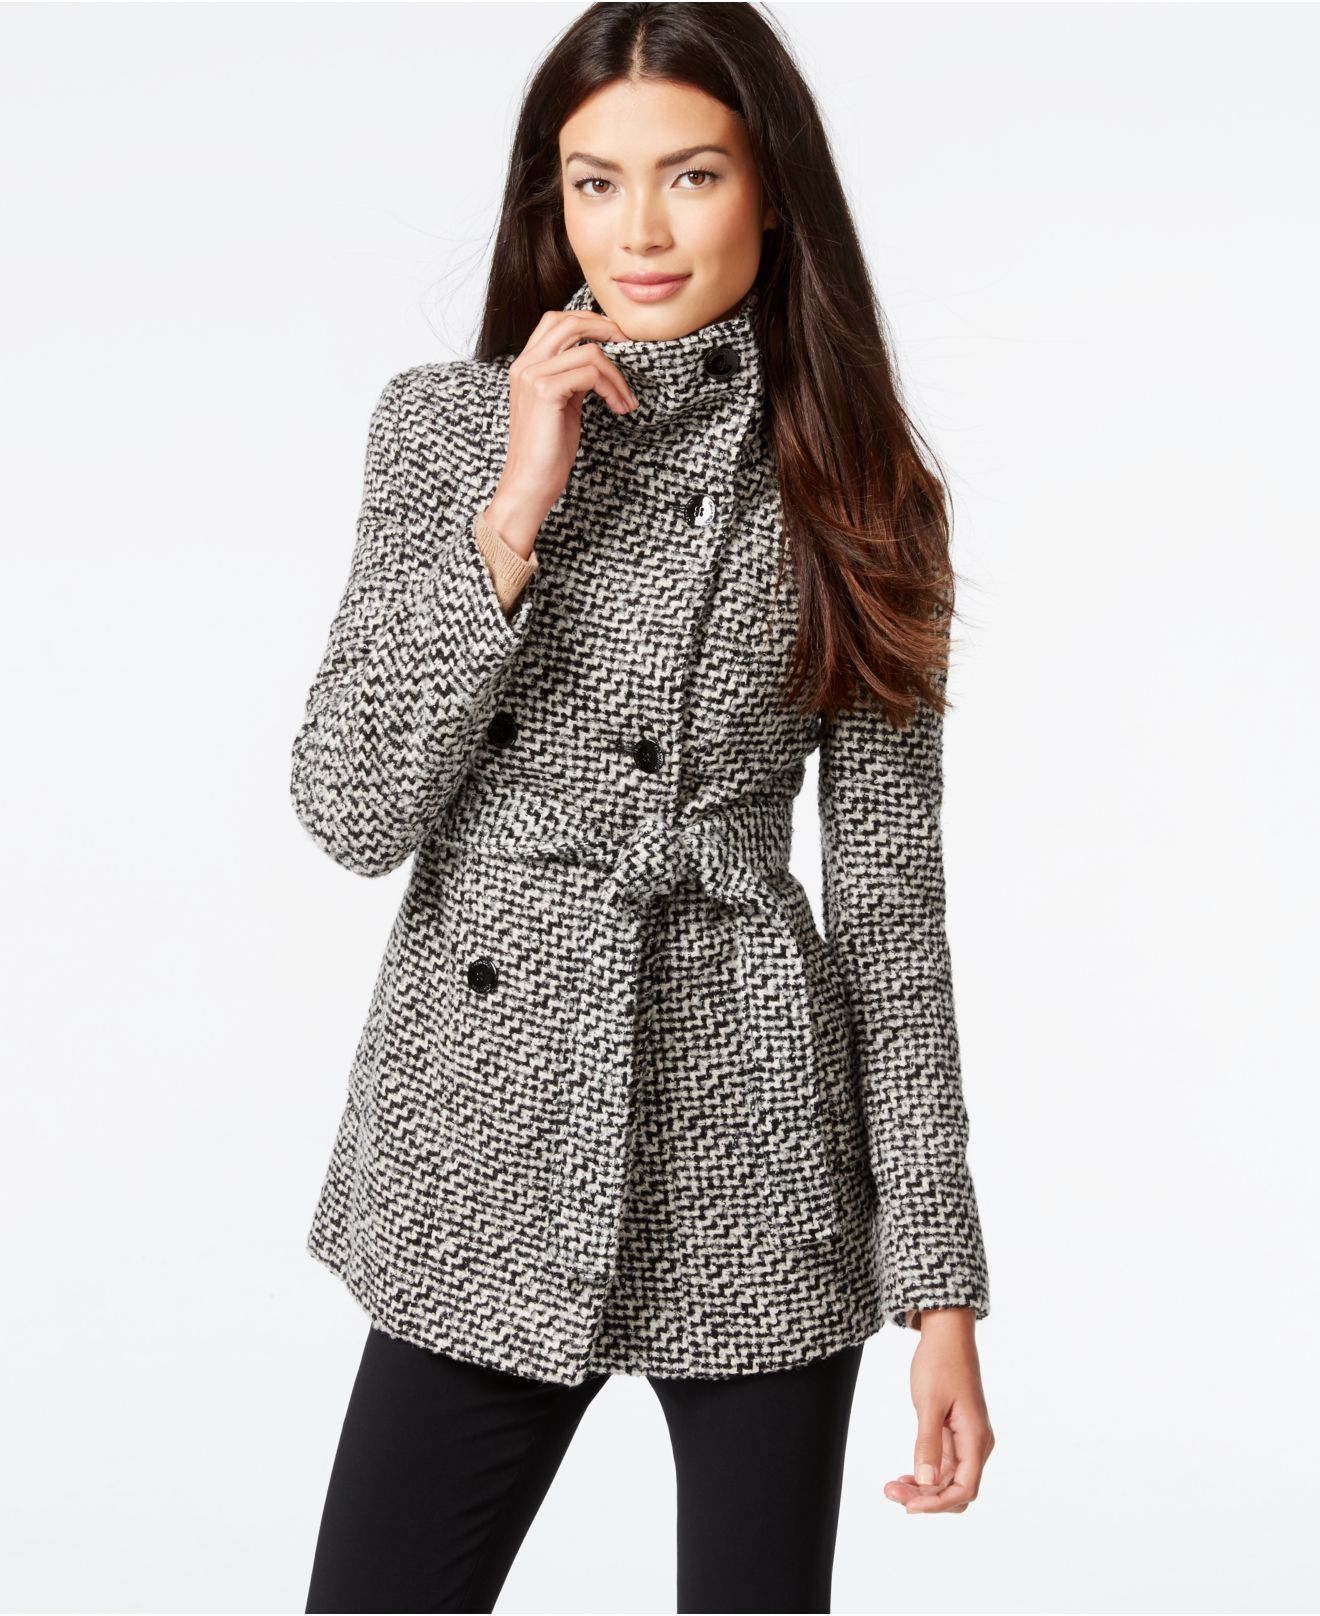 largest selection of to buy selected material Calvin Klein Pea Coat Women - Tradingbasis